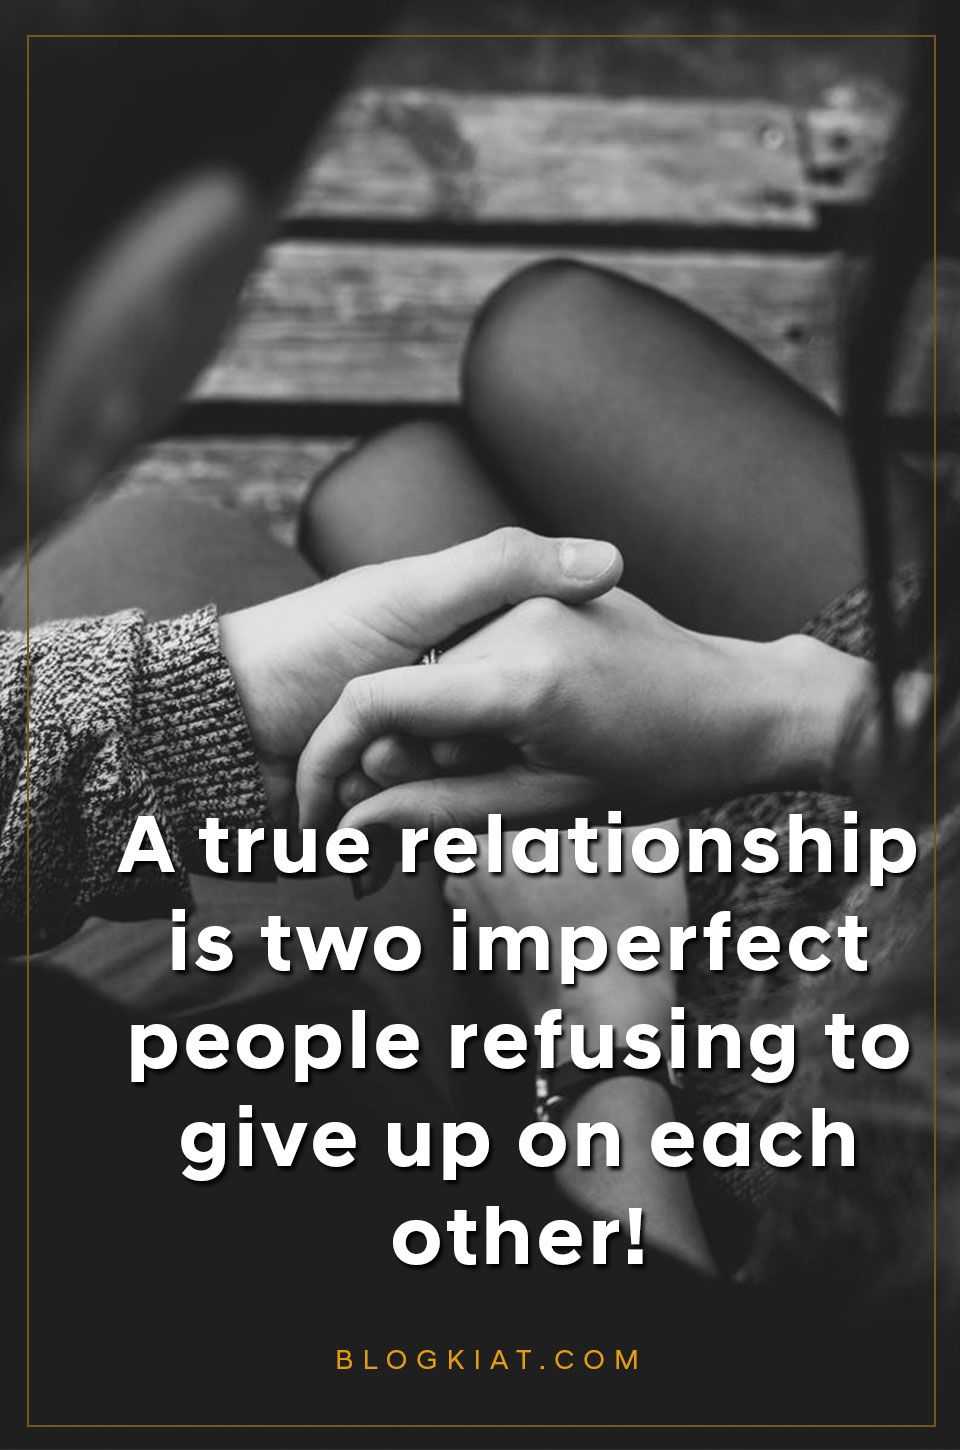 20 Cute Love Quotes From The Heart Blogkiat True Relationship Love Quotes True Love Couples